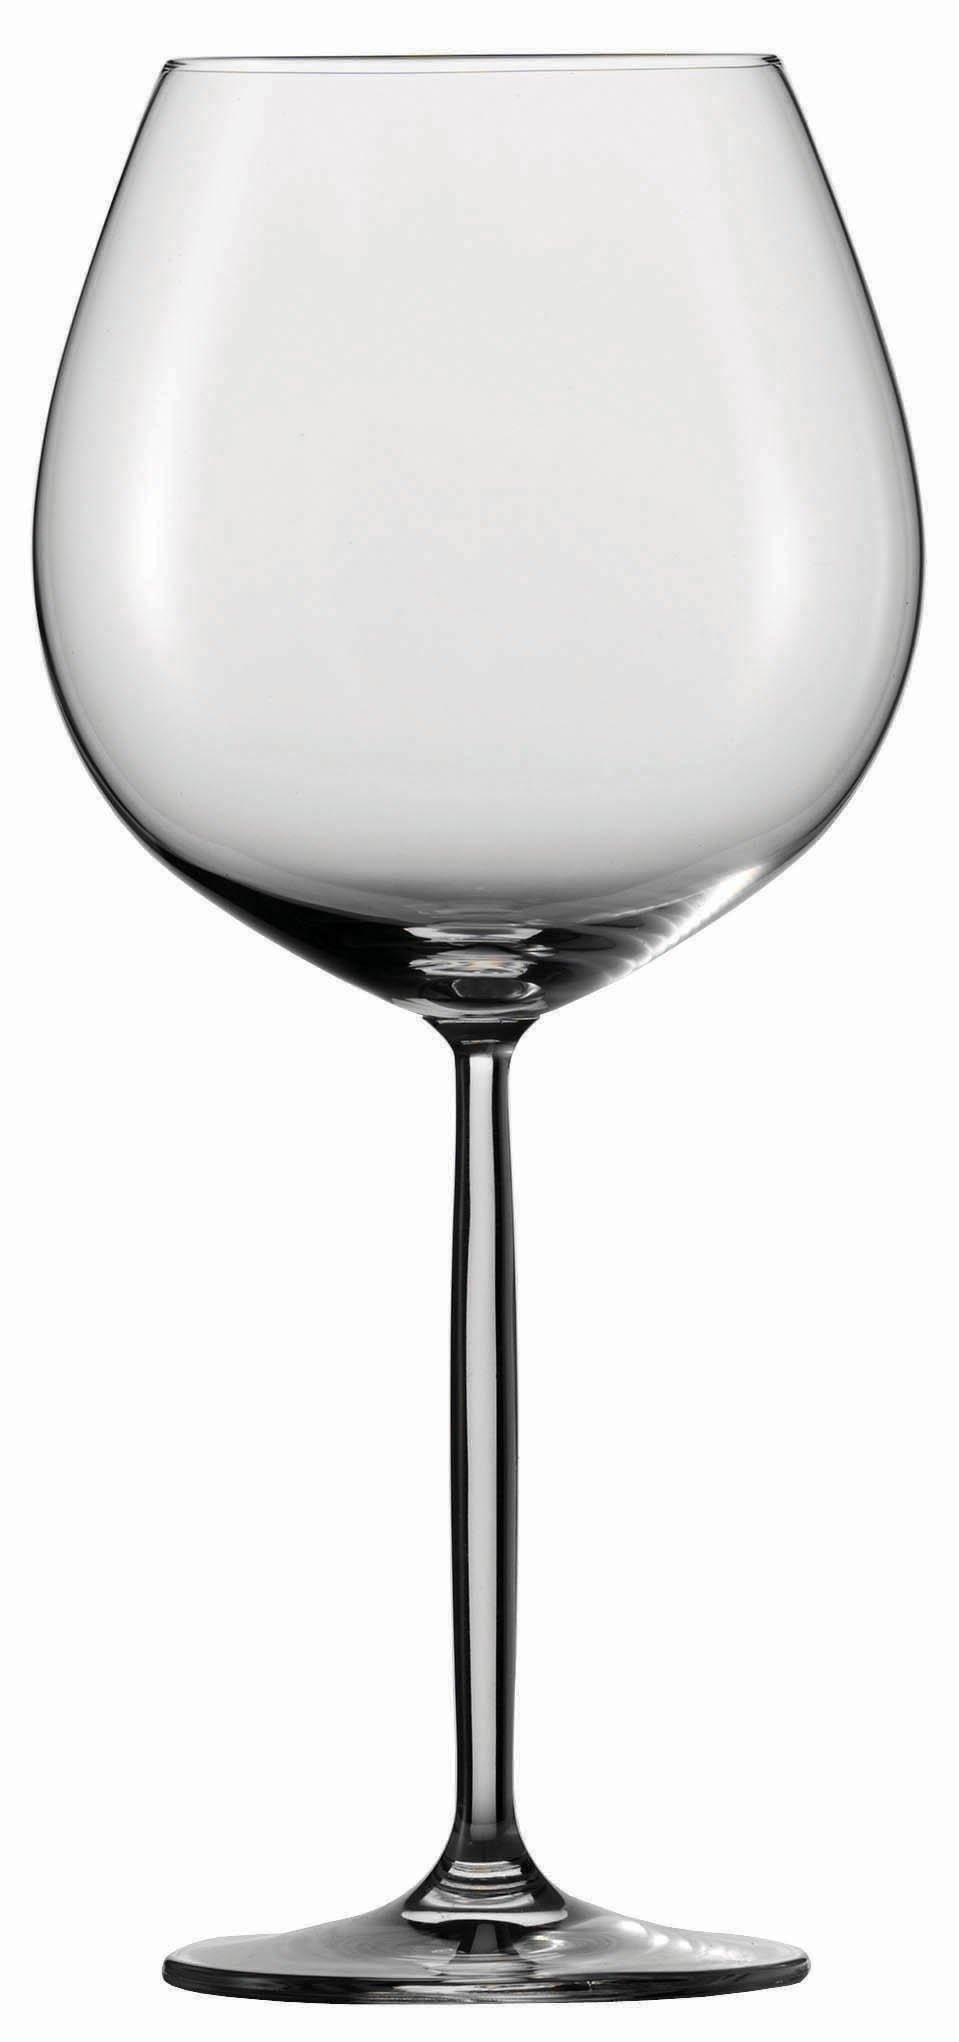 Schott Zwiesel Tritan Crystal Glass Diva Stemware Collection Claret Burgundy Red Wine Glass, 28.4-Ounce, Set of 6